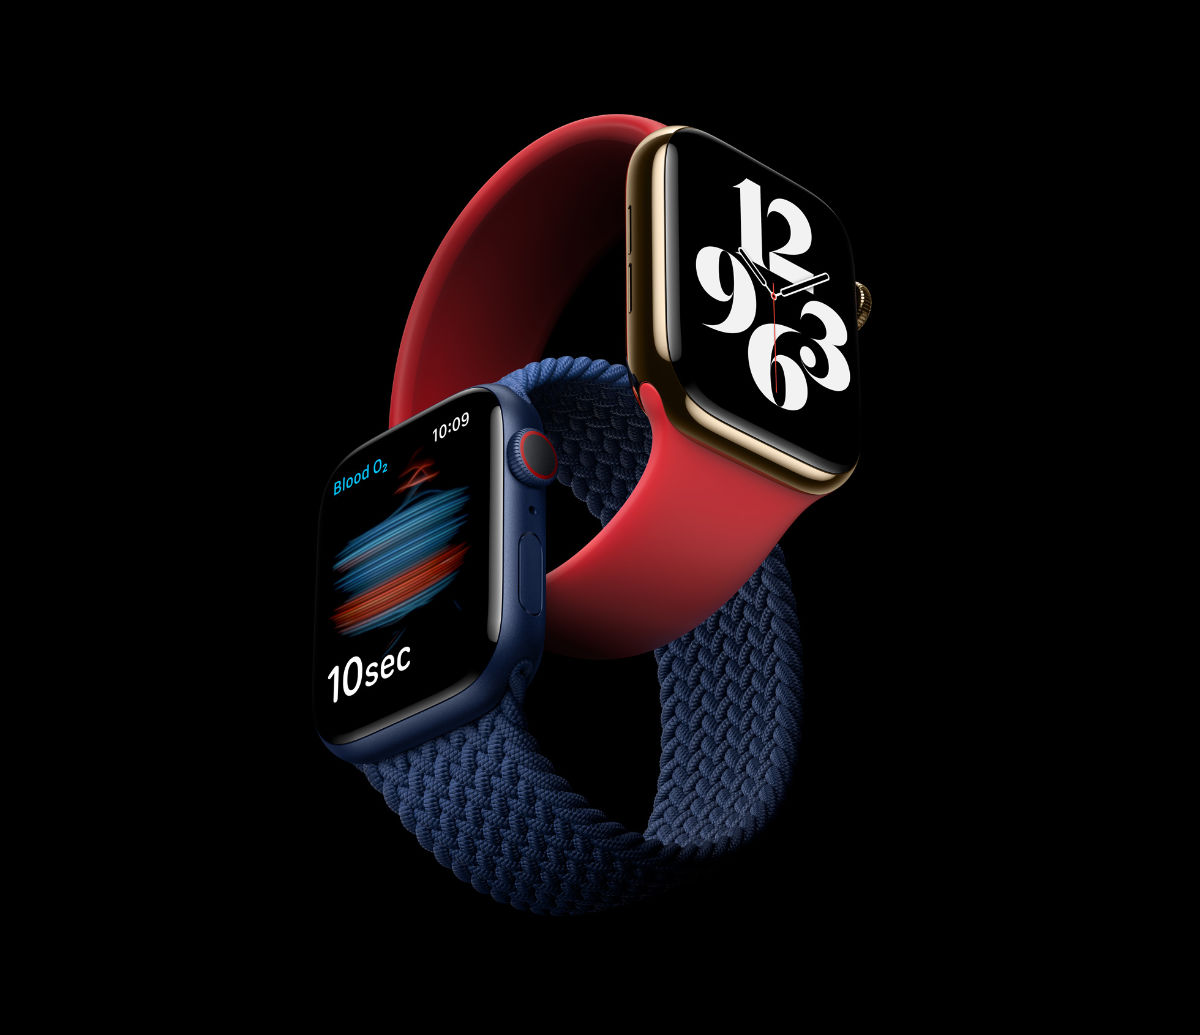 Apple Watch Series 6 and Apple Watch SE